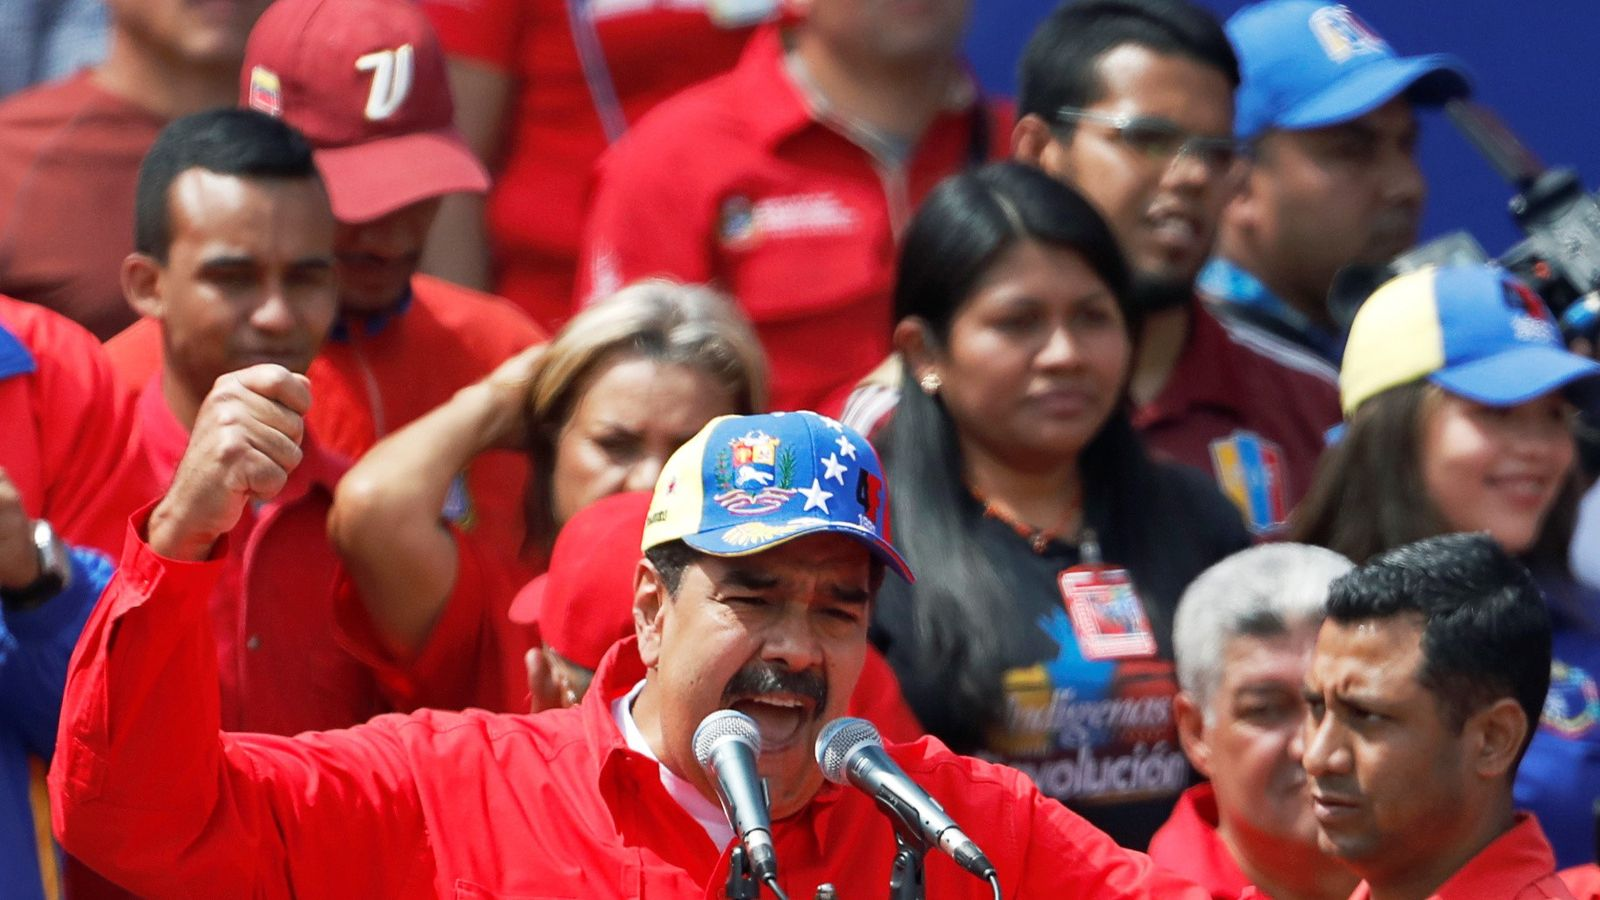 "Venezuela crisis: Nicolas Maduro rejects EU ultimatum to hold elections                                                                              President Nicolas Maduro says ""international politics can't be based on ultimatums... that was the era of empires and colonies""."